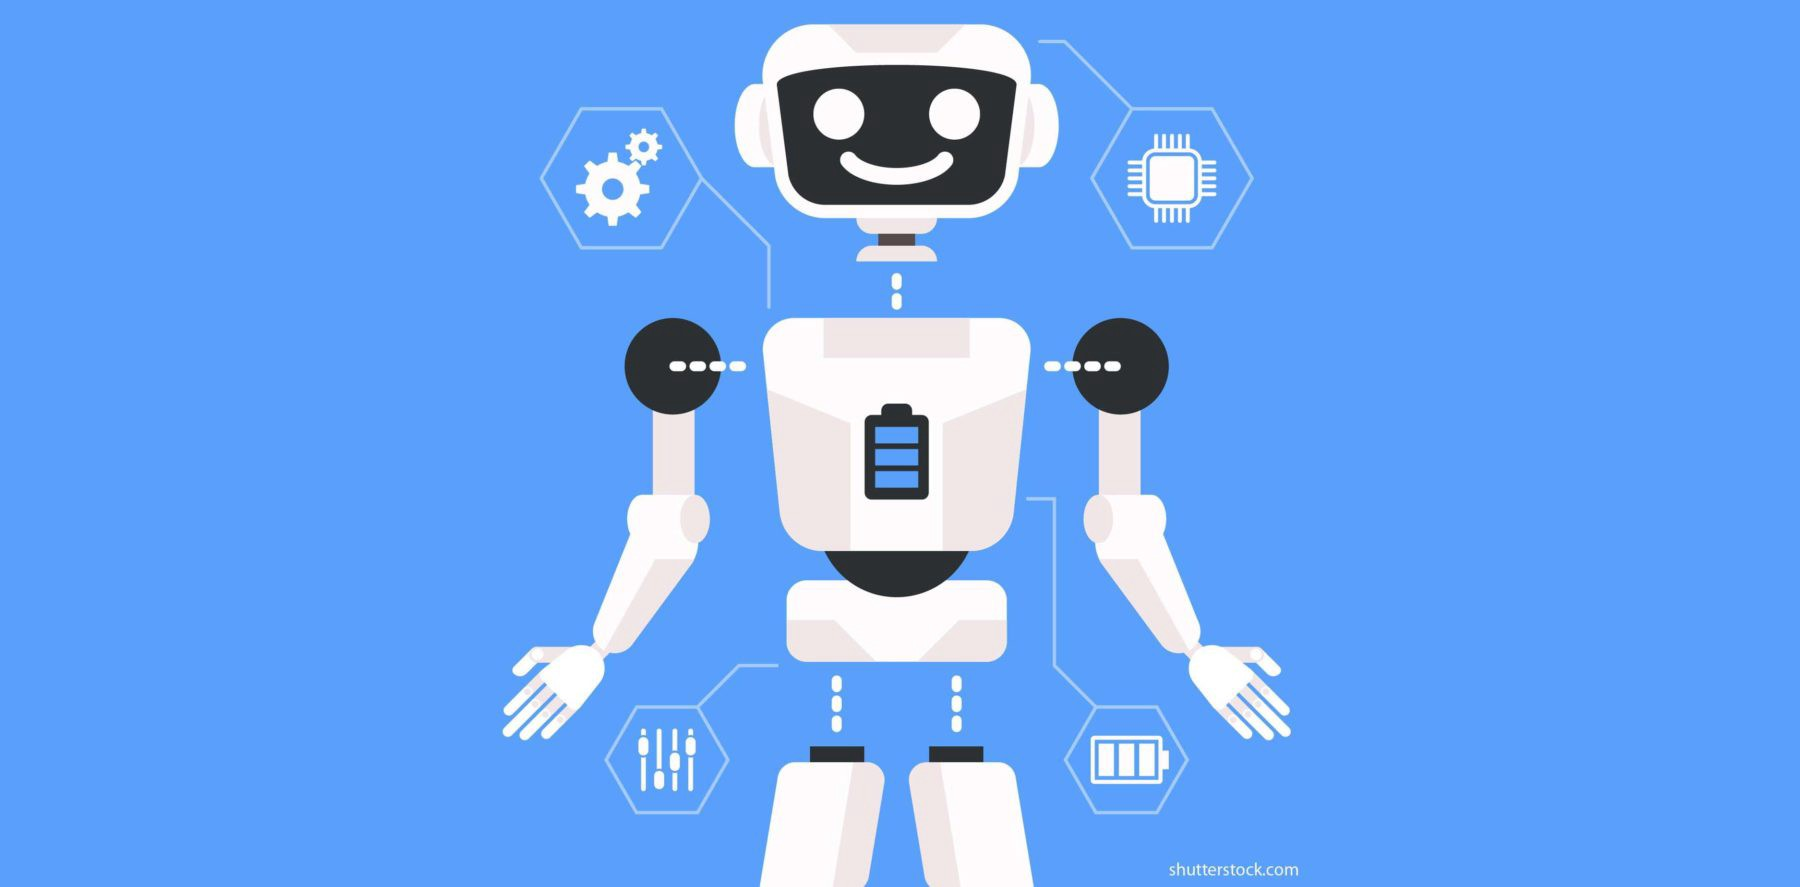 How you can build your first Chatbot using Rasa (in under 15 minutes)